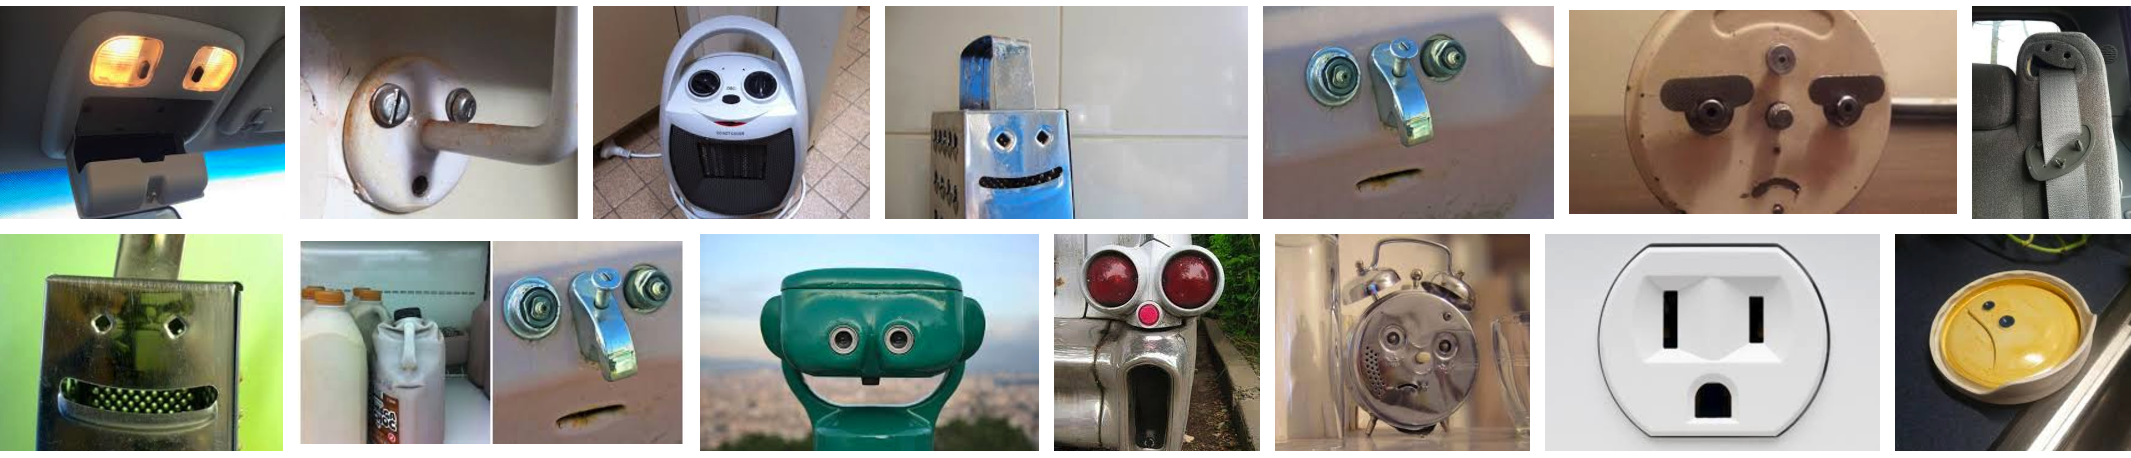 "A google image search of ""faces in objects"" shows funny faces"